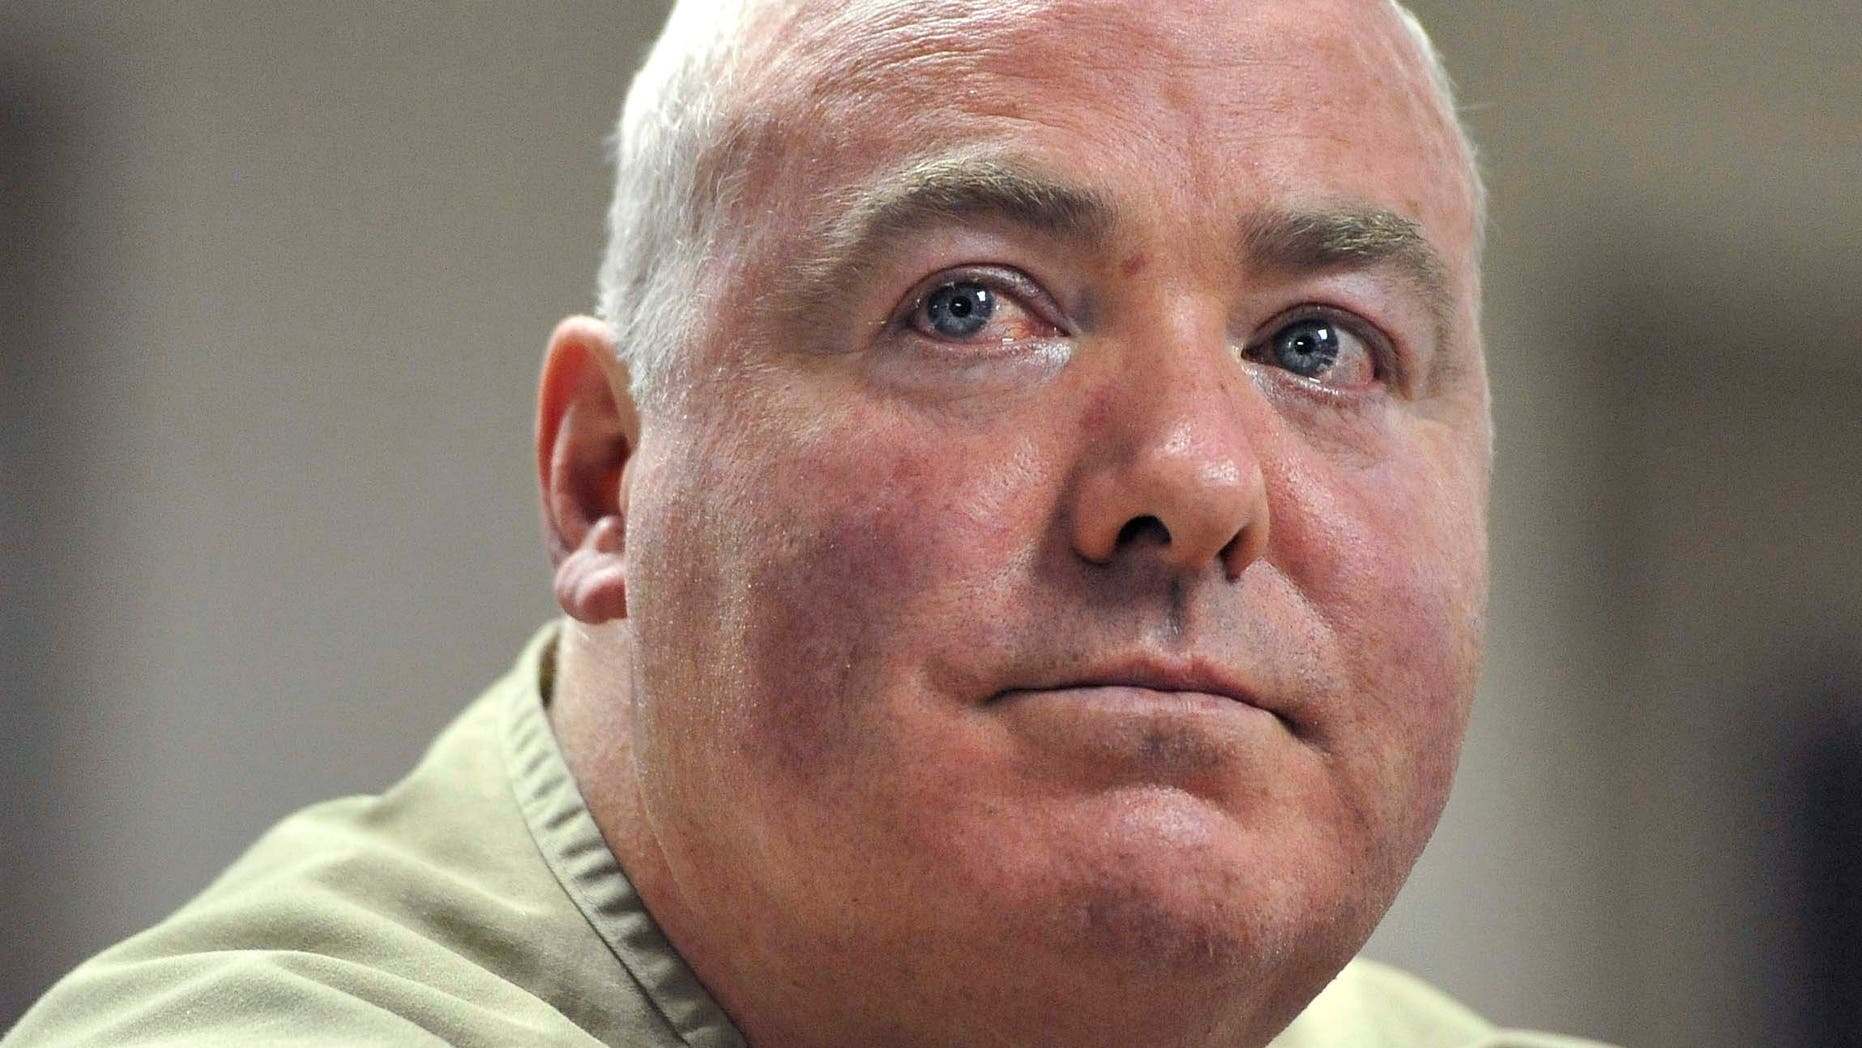 Oct. 24, 2012: In this file photo, Michael Skakel listens during a parole hearing at McDougall-Walker Correctional Institution in Suffield, Conn.